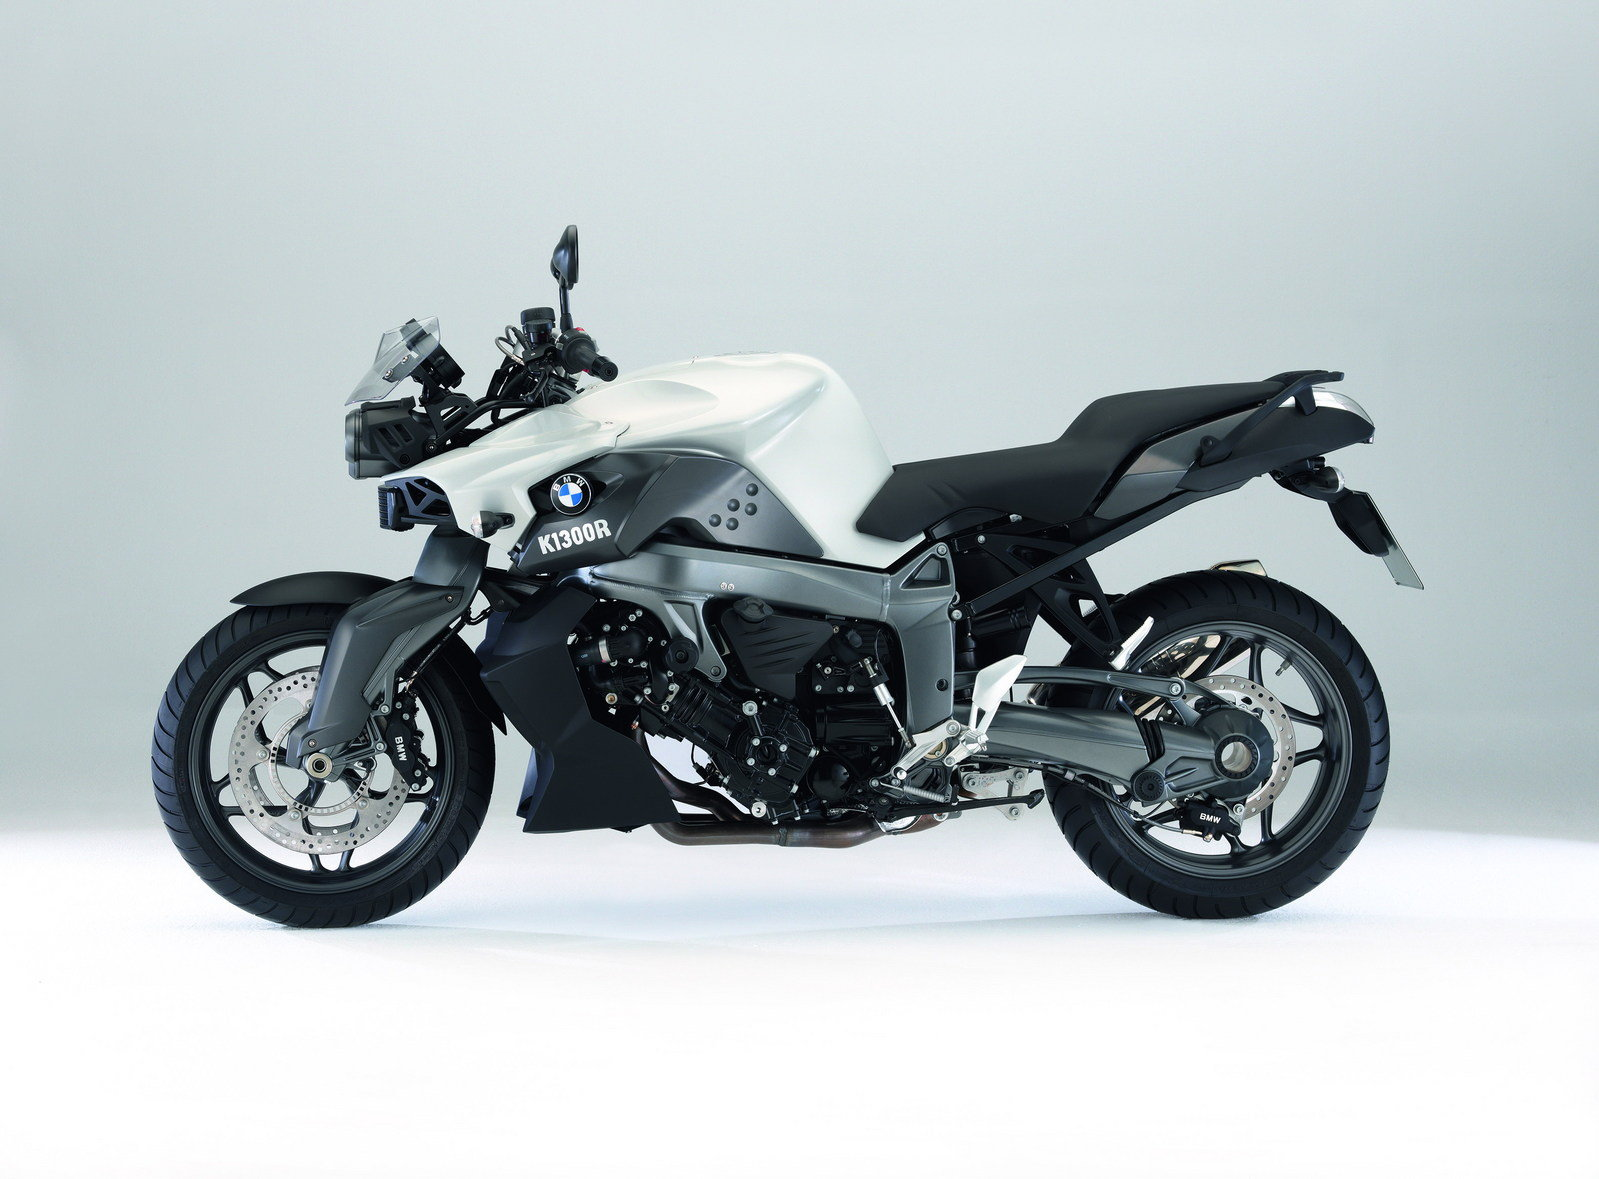 2009 bmw k 1300 r picture 302868 motorcycle review top speed. Black Bedroom Furniture Sets. Home Design Ideas